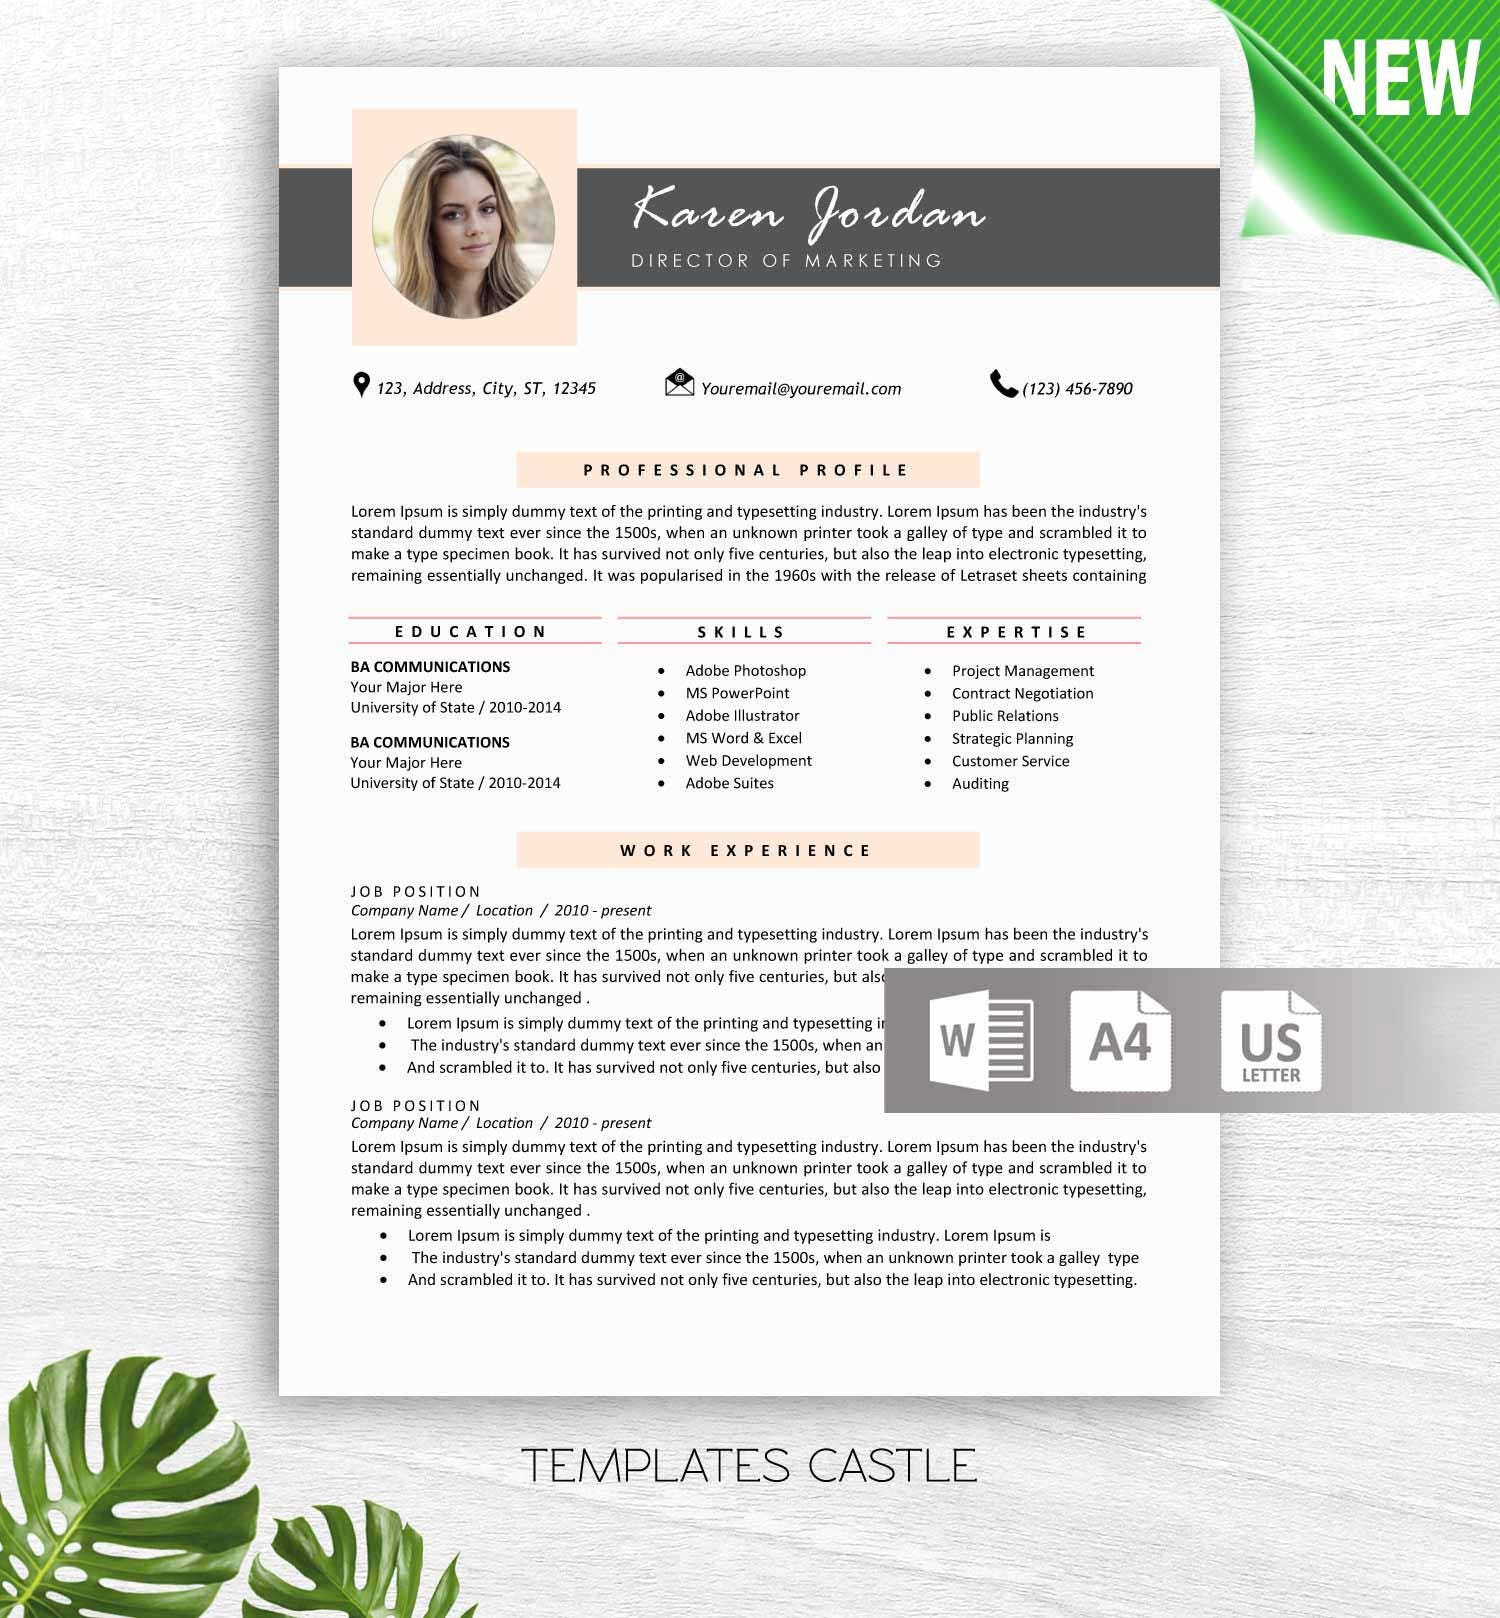 Professional Resume Word Template: Professional Resume Template Word With Photo Modern Resume